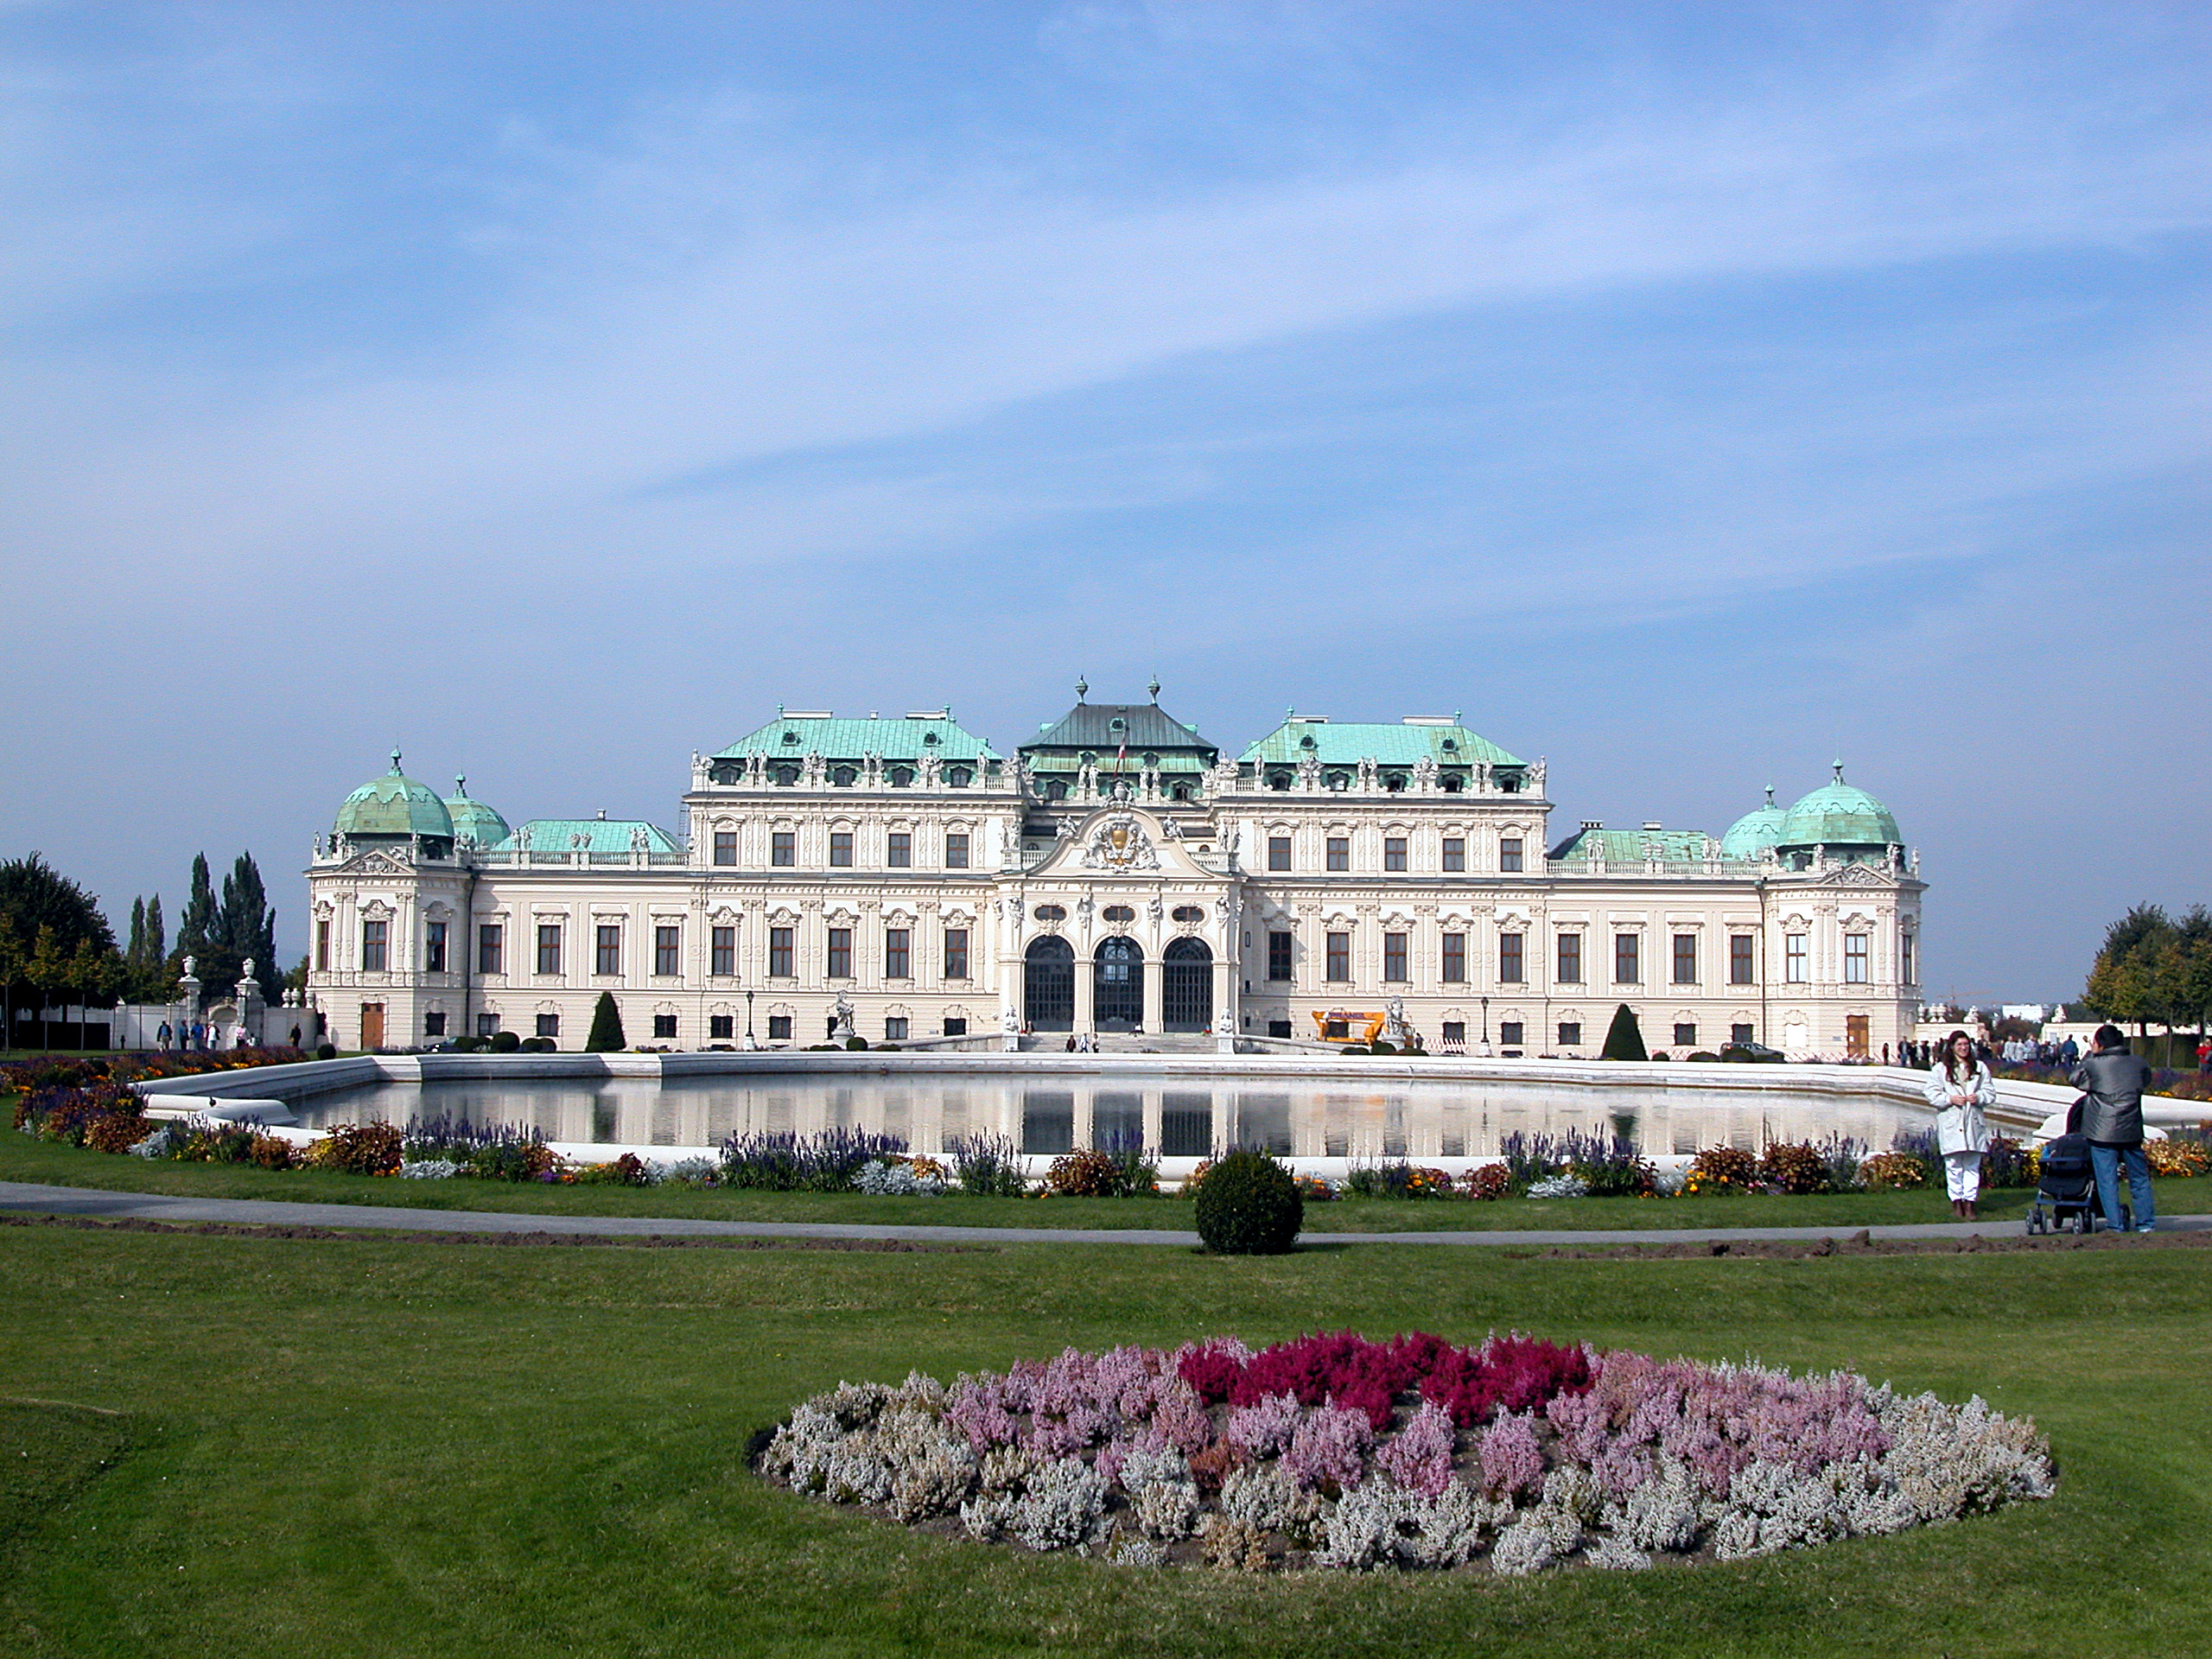 40 gorgeous photos of Schloss Belvedere, Austria : Places ...